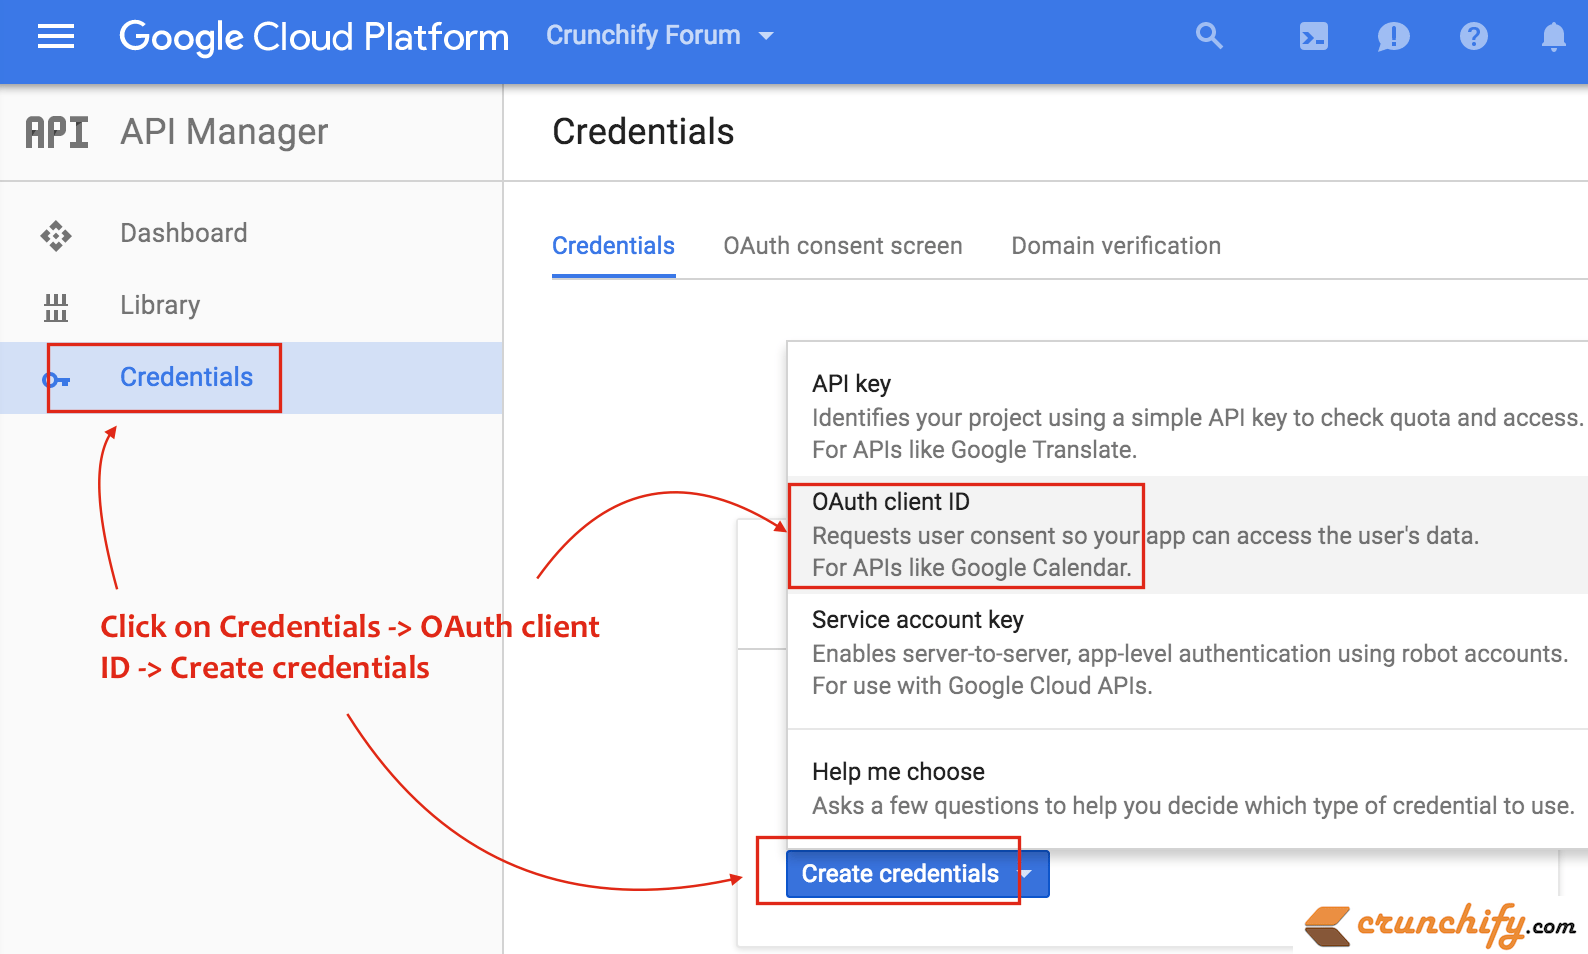 Click On Credential and Create Credentials - Choose OAuth Client ID